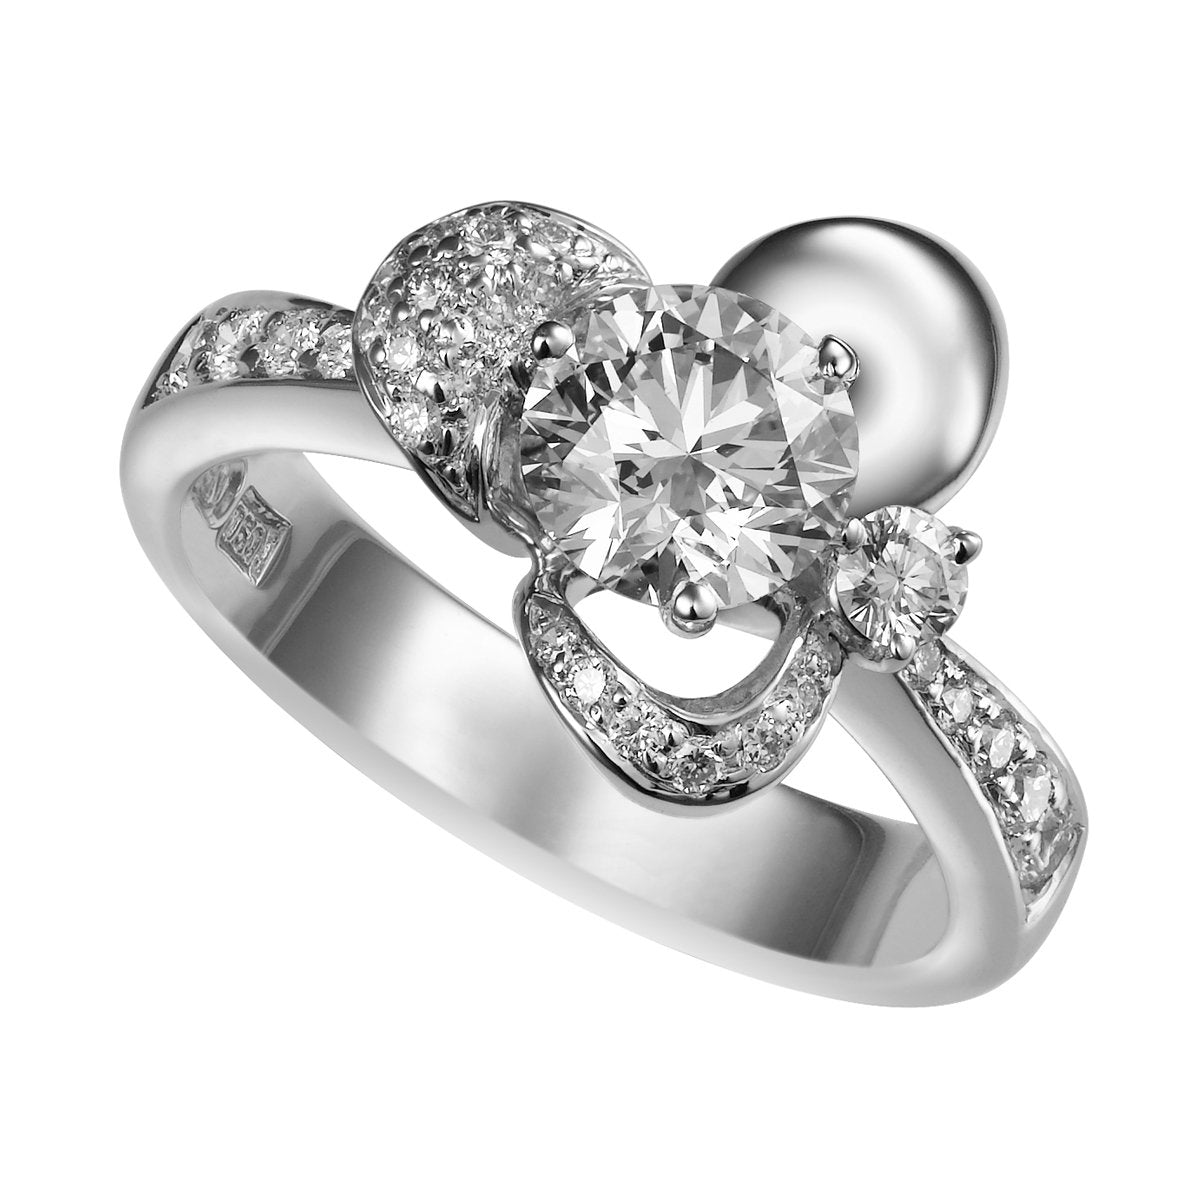 Leora diamond ring